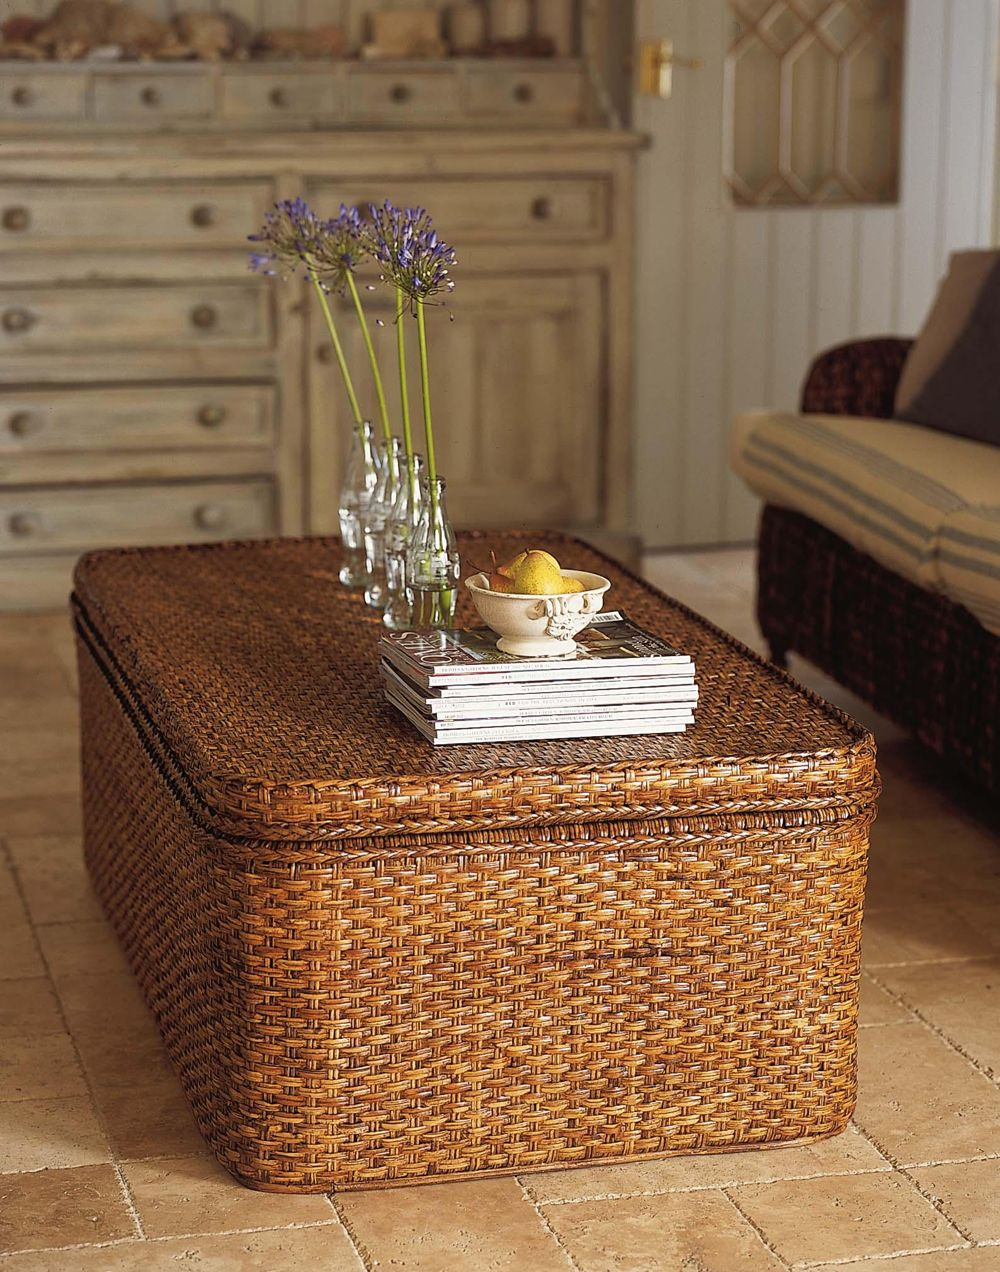 Wicker Chest Google Search Wicker Coffee Table Rattan Coffee Table Coffee Table Trunk Wicker coffee table with storage